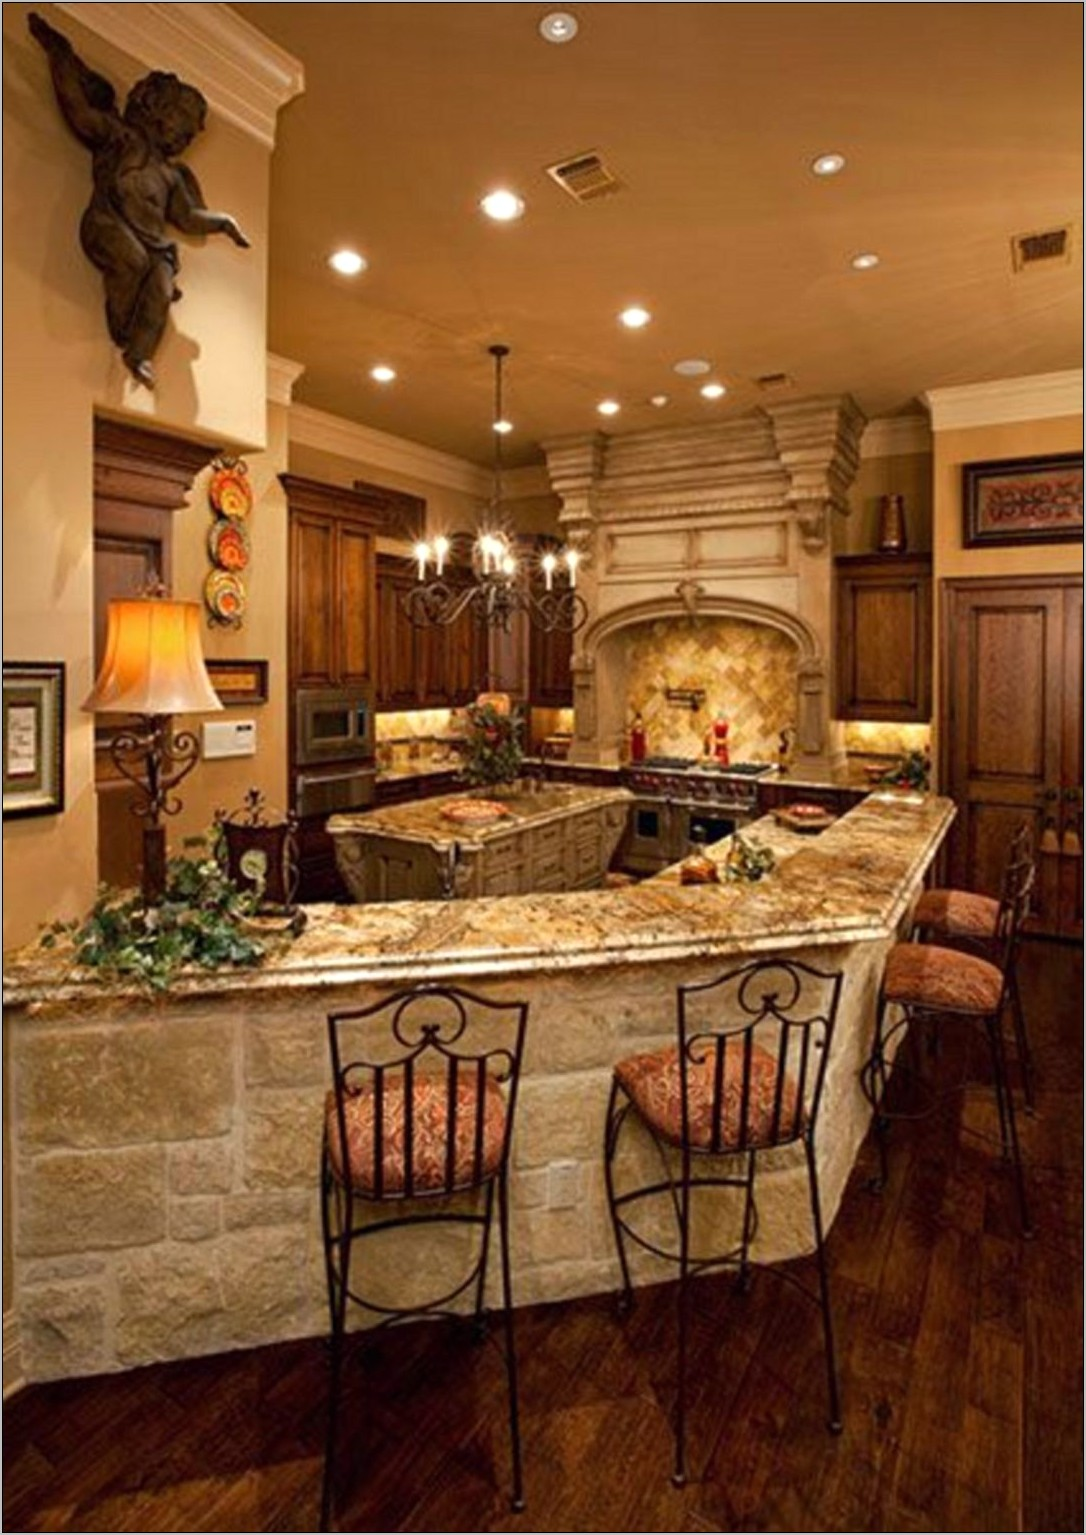 Italian Style Decor For Kitchen